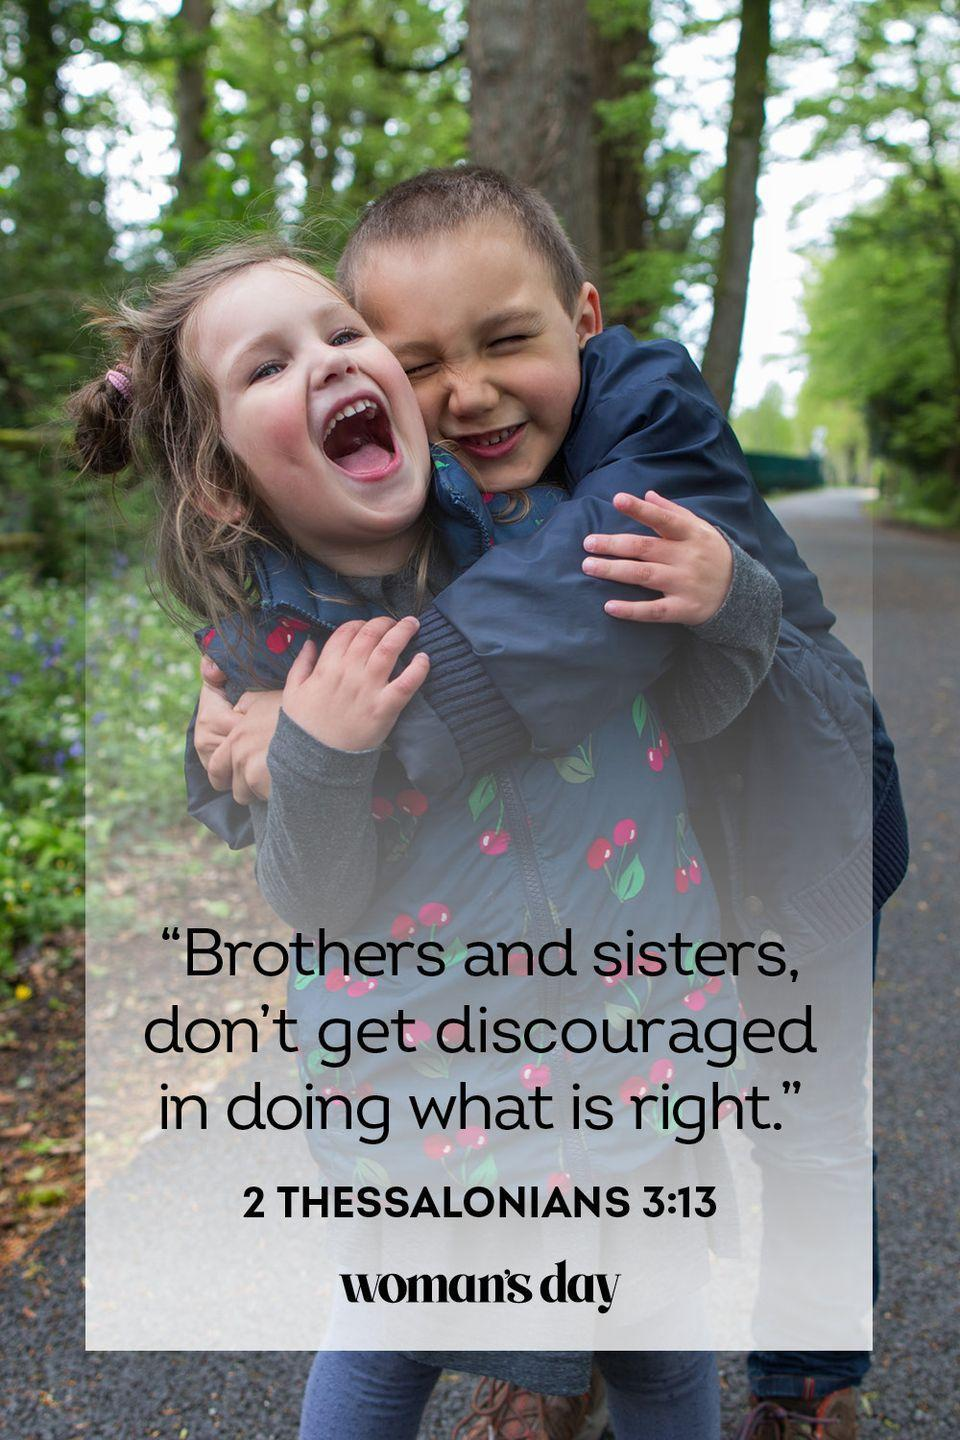 """<p>""""Brothers and sisters, don't get discouraged in doing what is right."""" — 2 Thessalonians 3:13</p><p><strong>THE GOOD NEWS</strong>: Doing the right thing isn't always the same as doing the easy thing, but even if it's harder, the payoff of doing the right thing will be so much greater.</p>"""